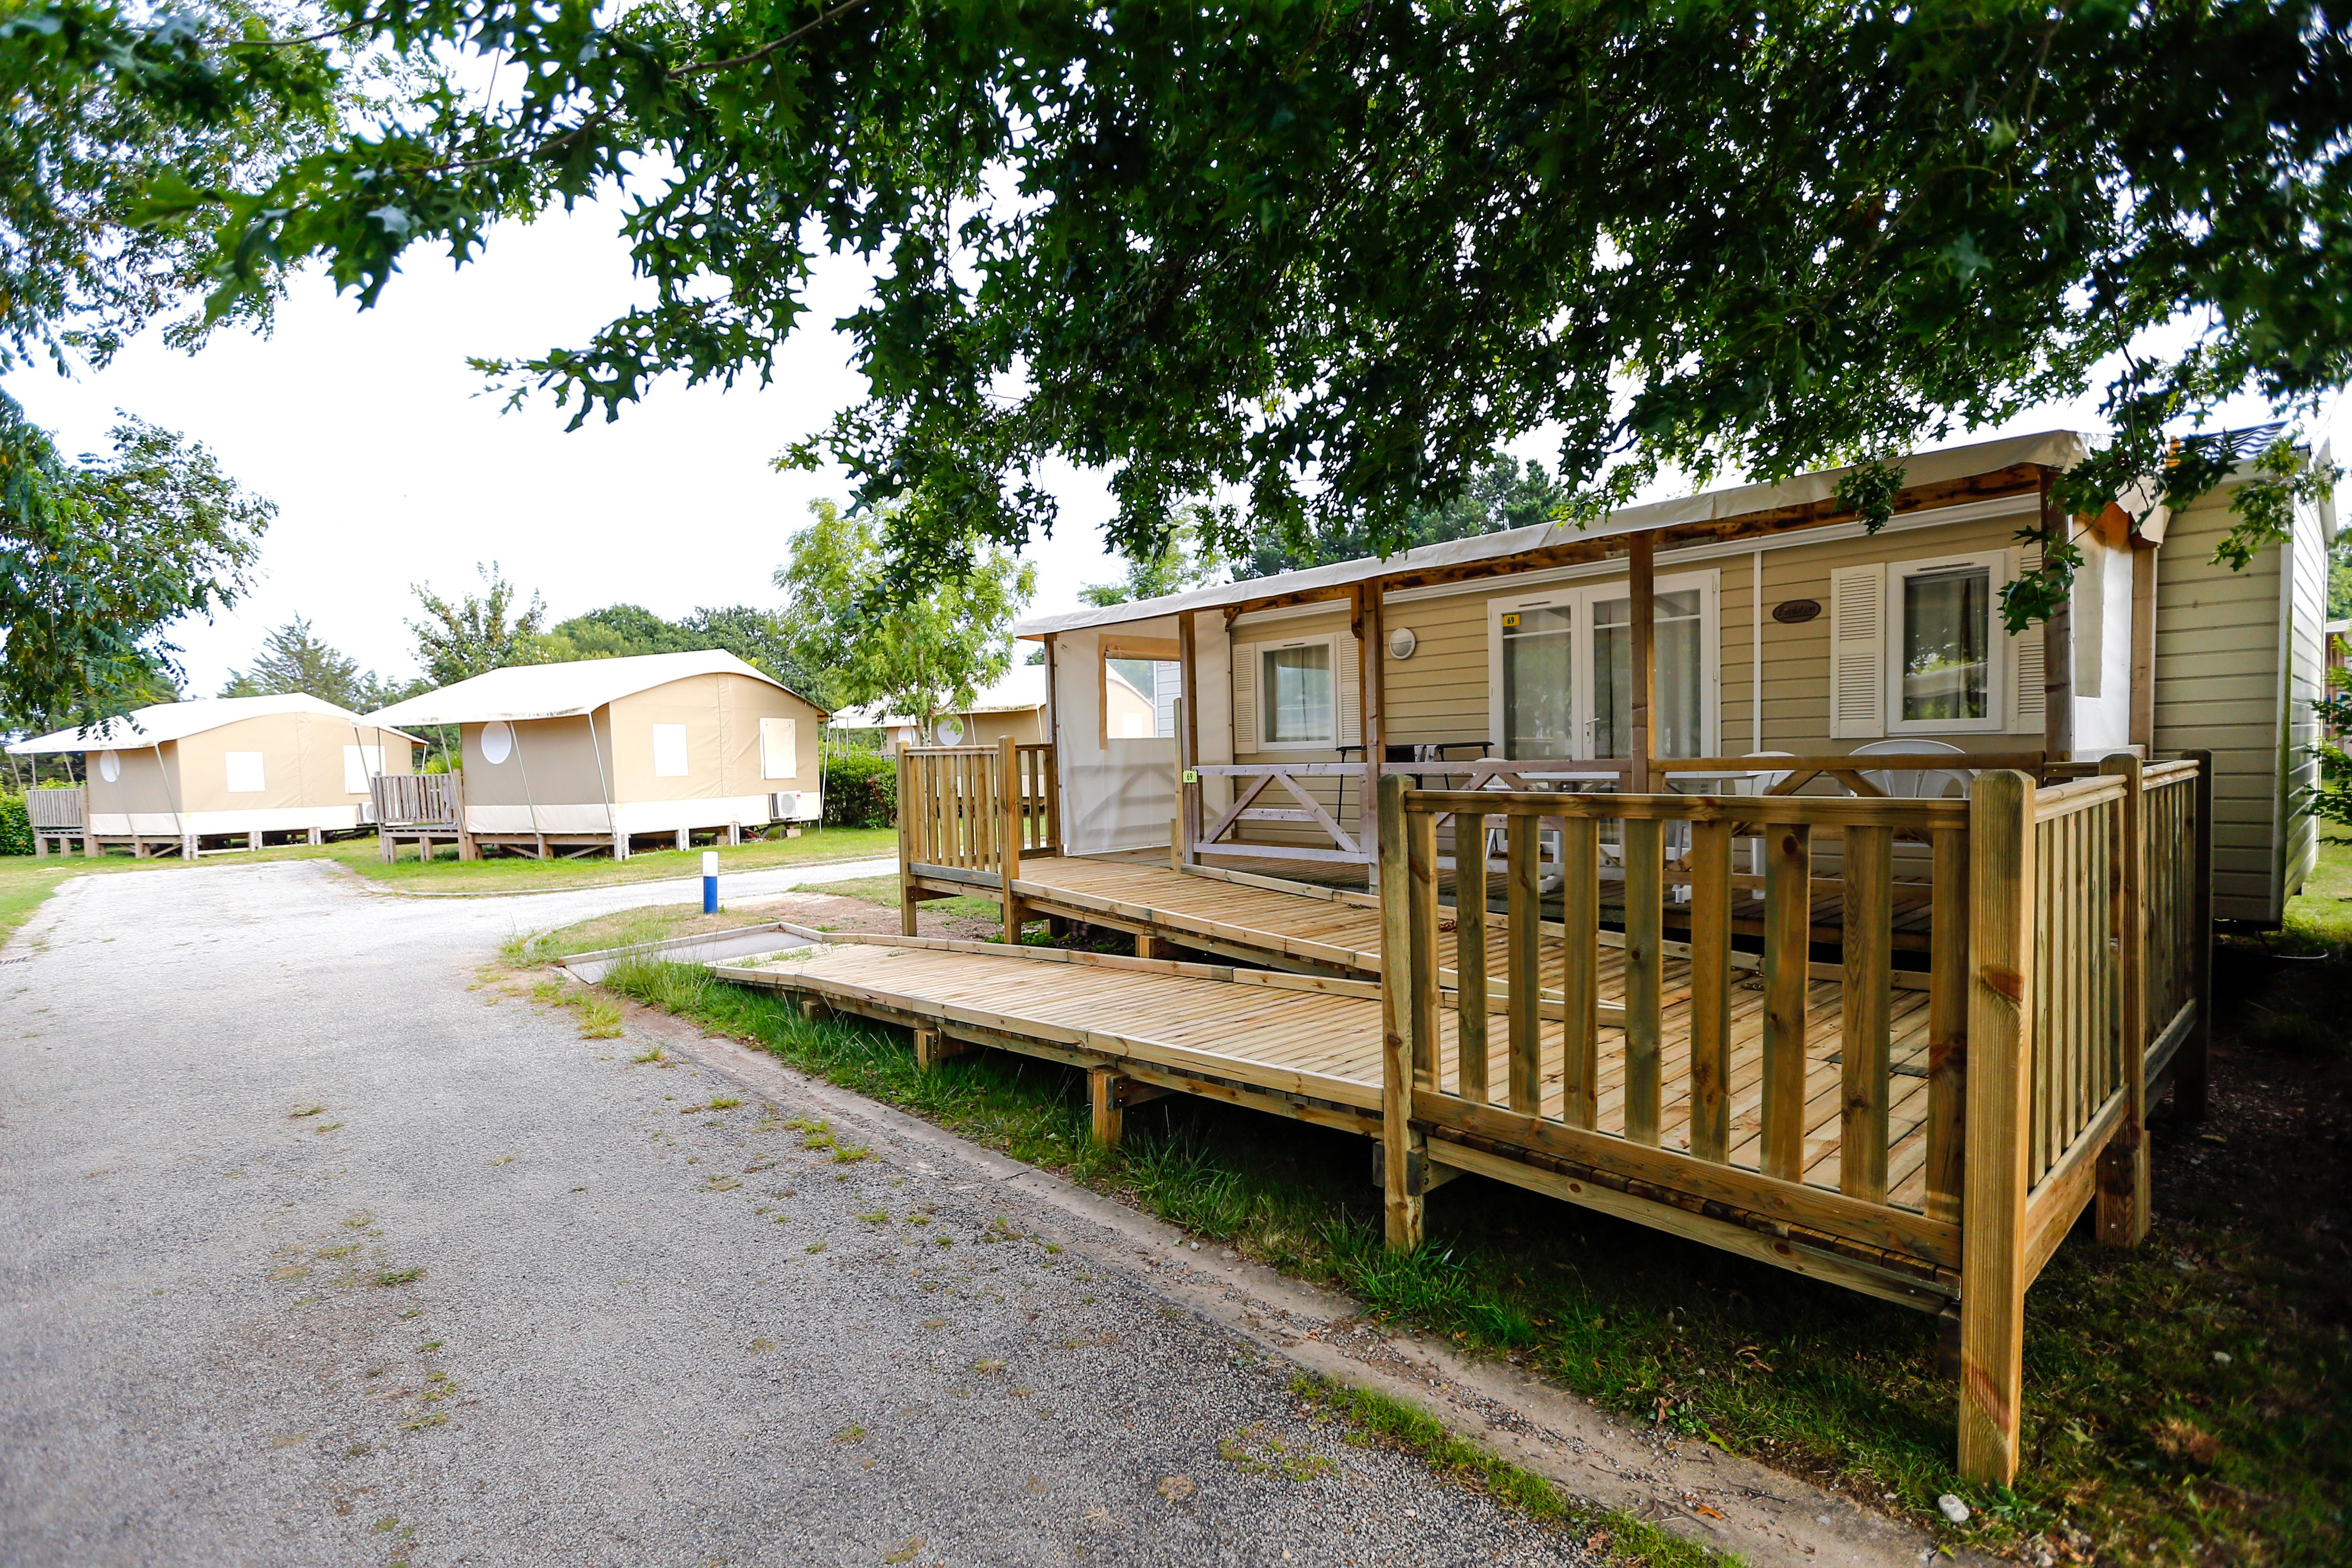 Location - Mobil-Home Accessible Pmr 2 Chambres - Camping Campéole Le Courounba